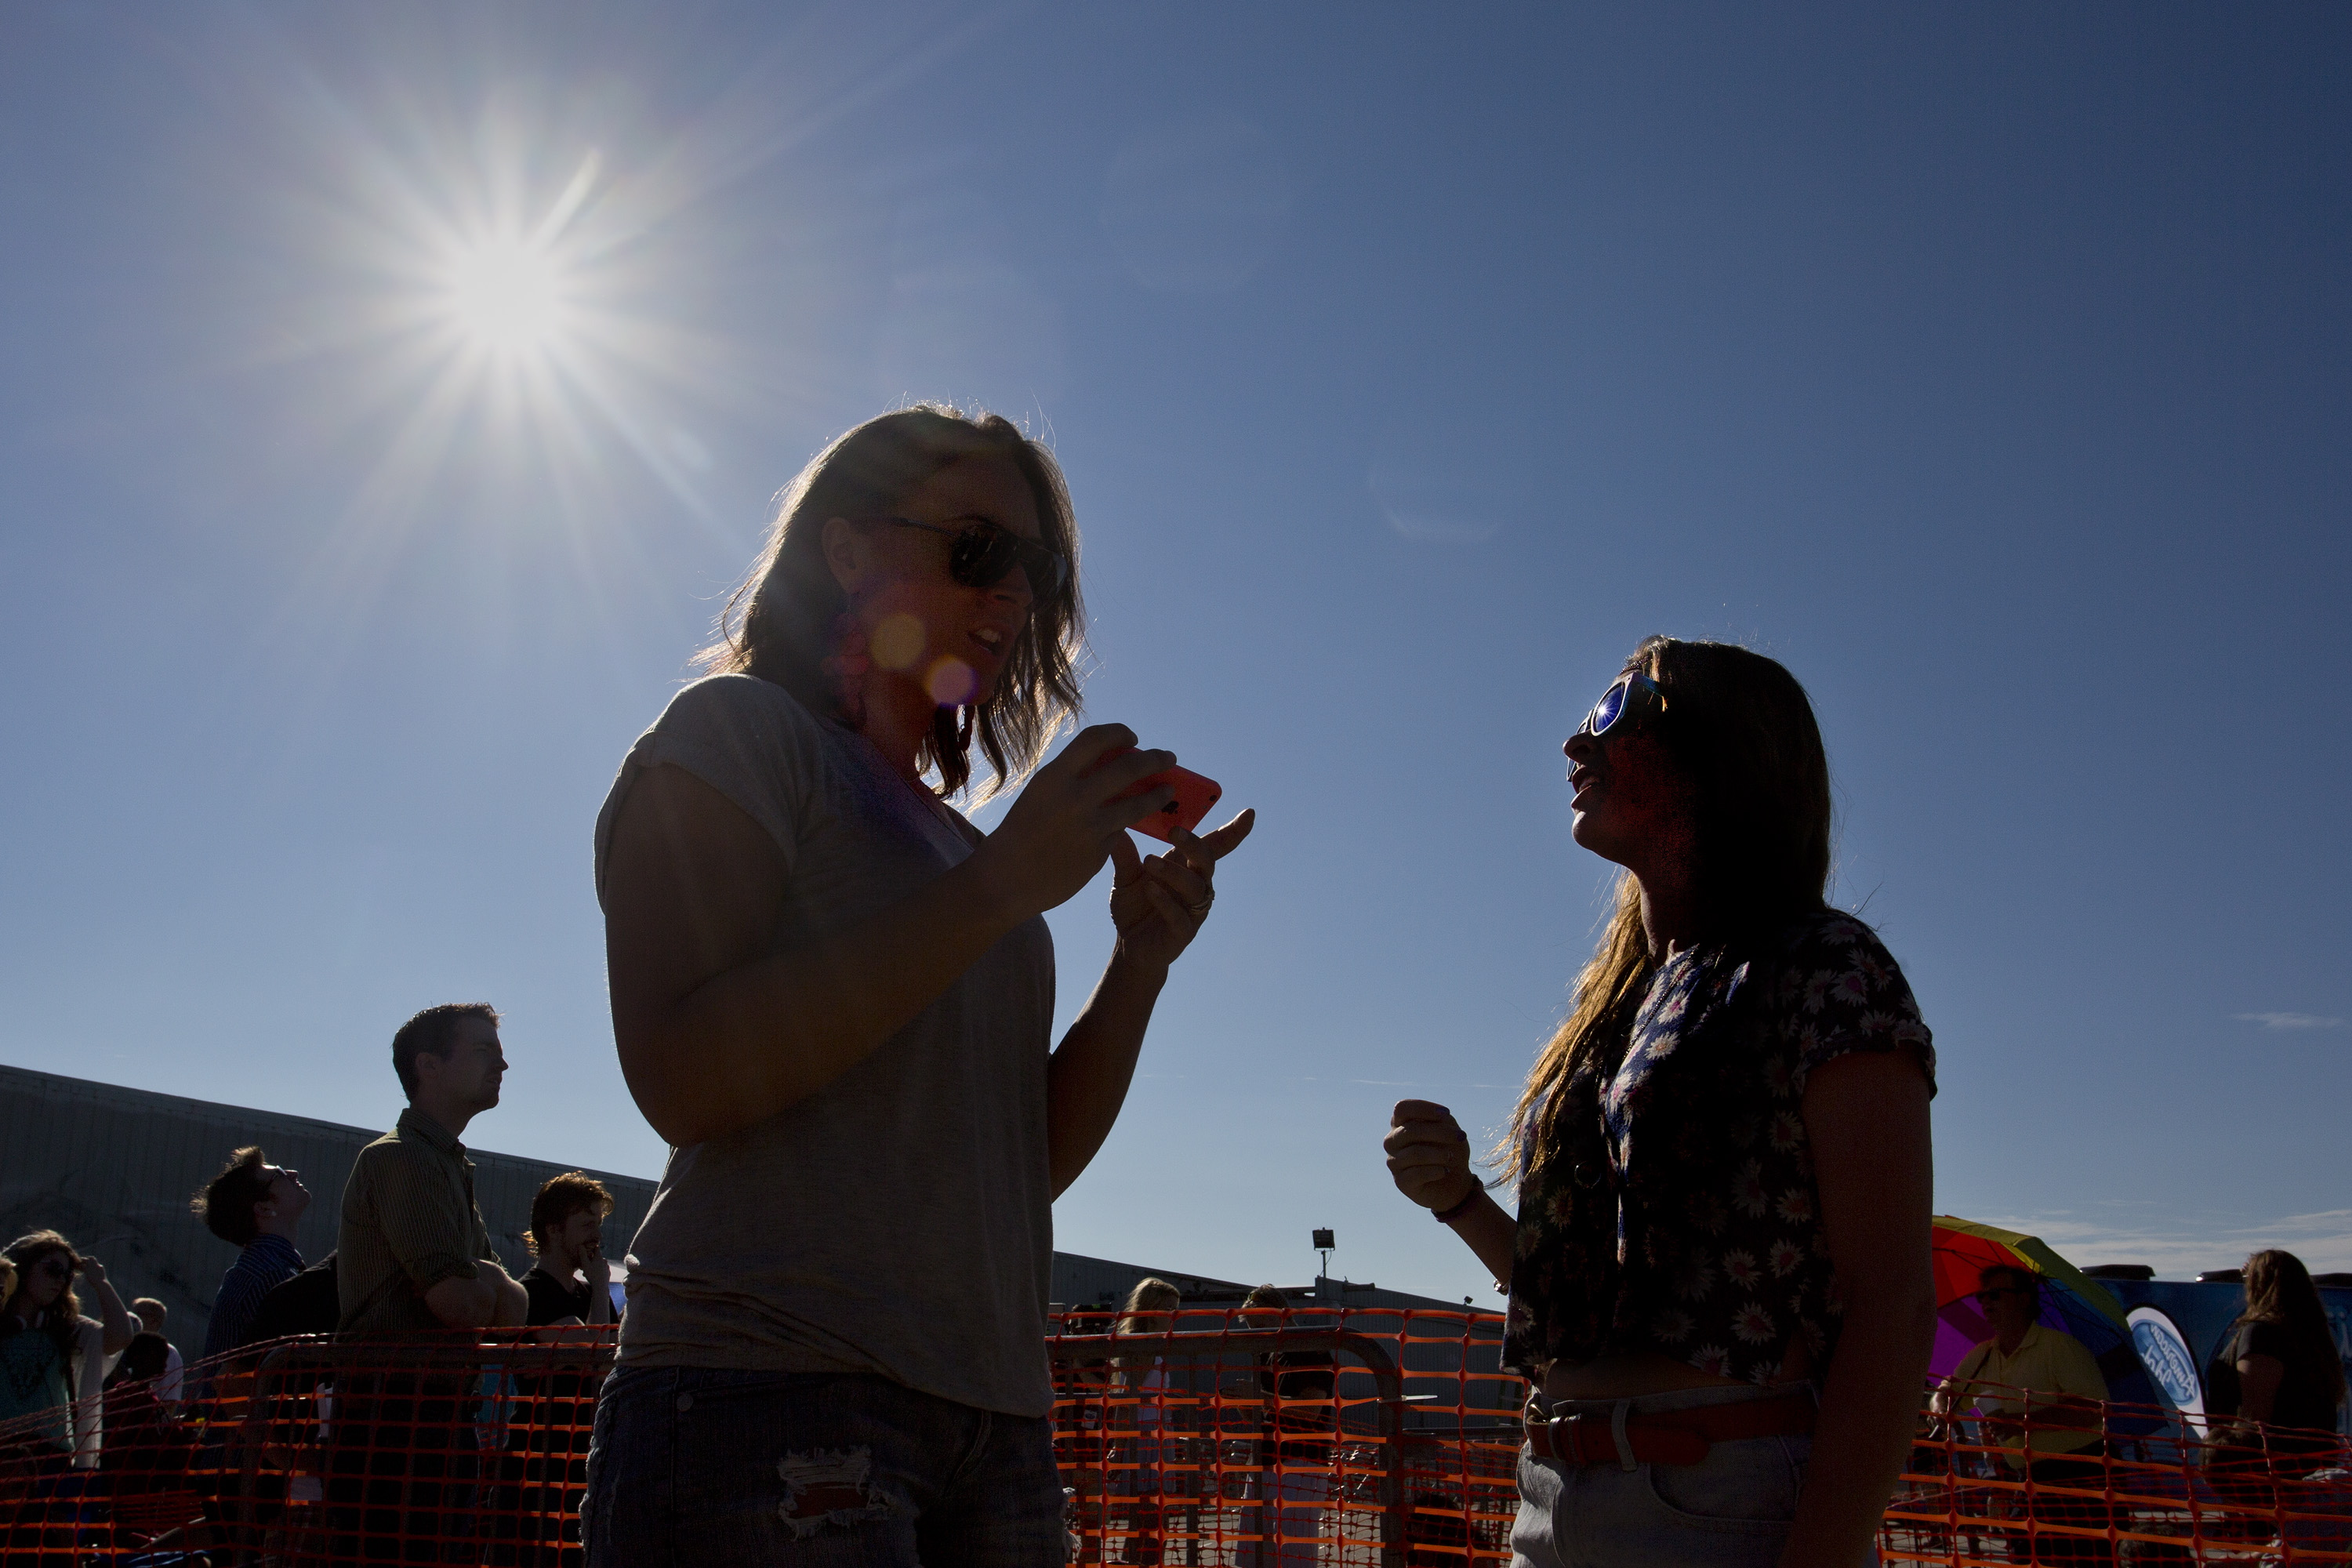 Matte Cardelli, 28, of New Auburn, uses her phone to look up song lyrics and she and her friend, Danielle Doucette, 23, of Berwick, at right, wait in line to audition for American Idol.